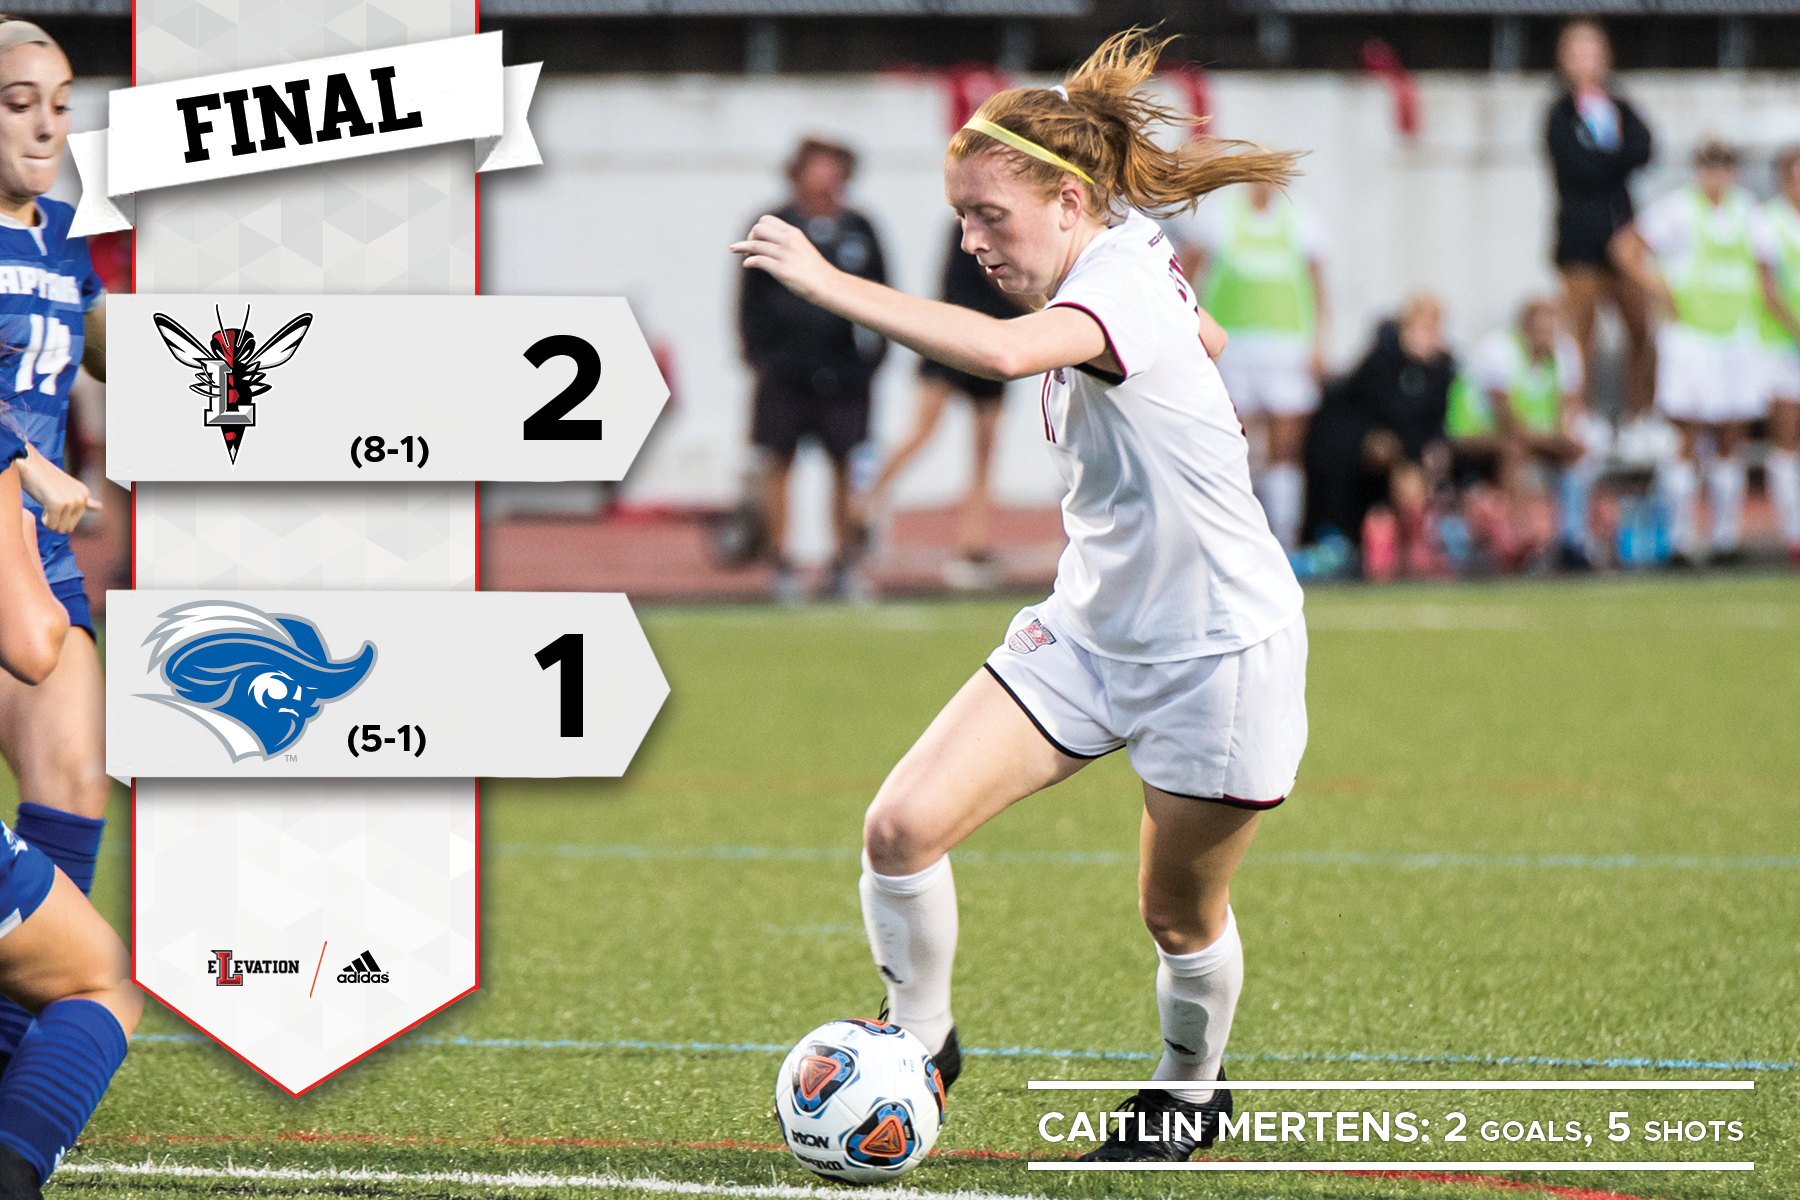 Caitlin Mertens playing soccer. Graphic showing CNU and Lynchburg logos and 2-1 final score.